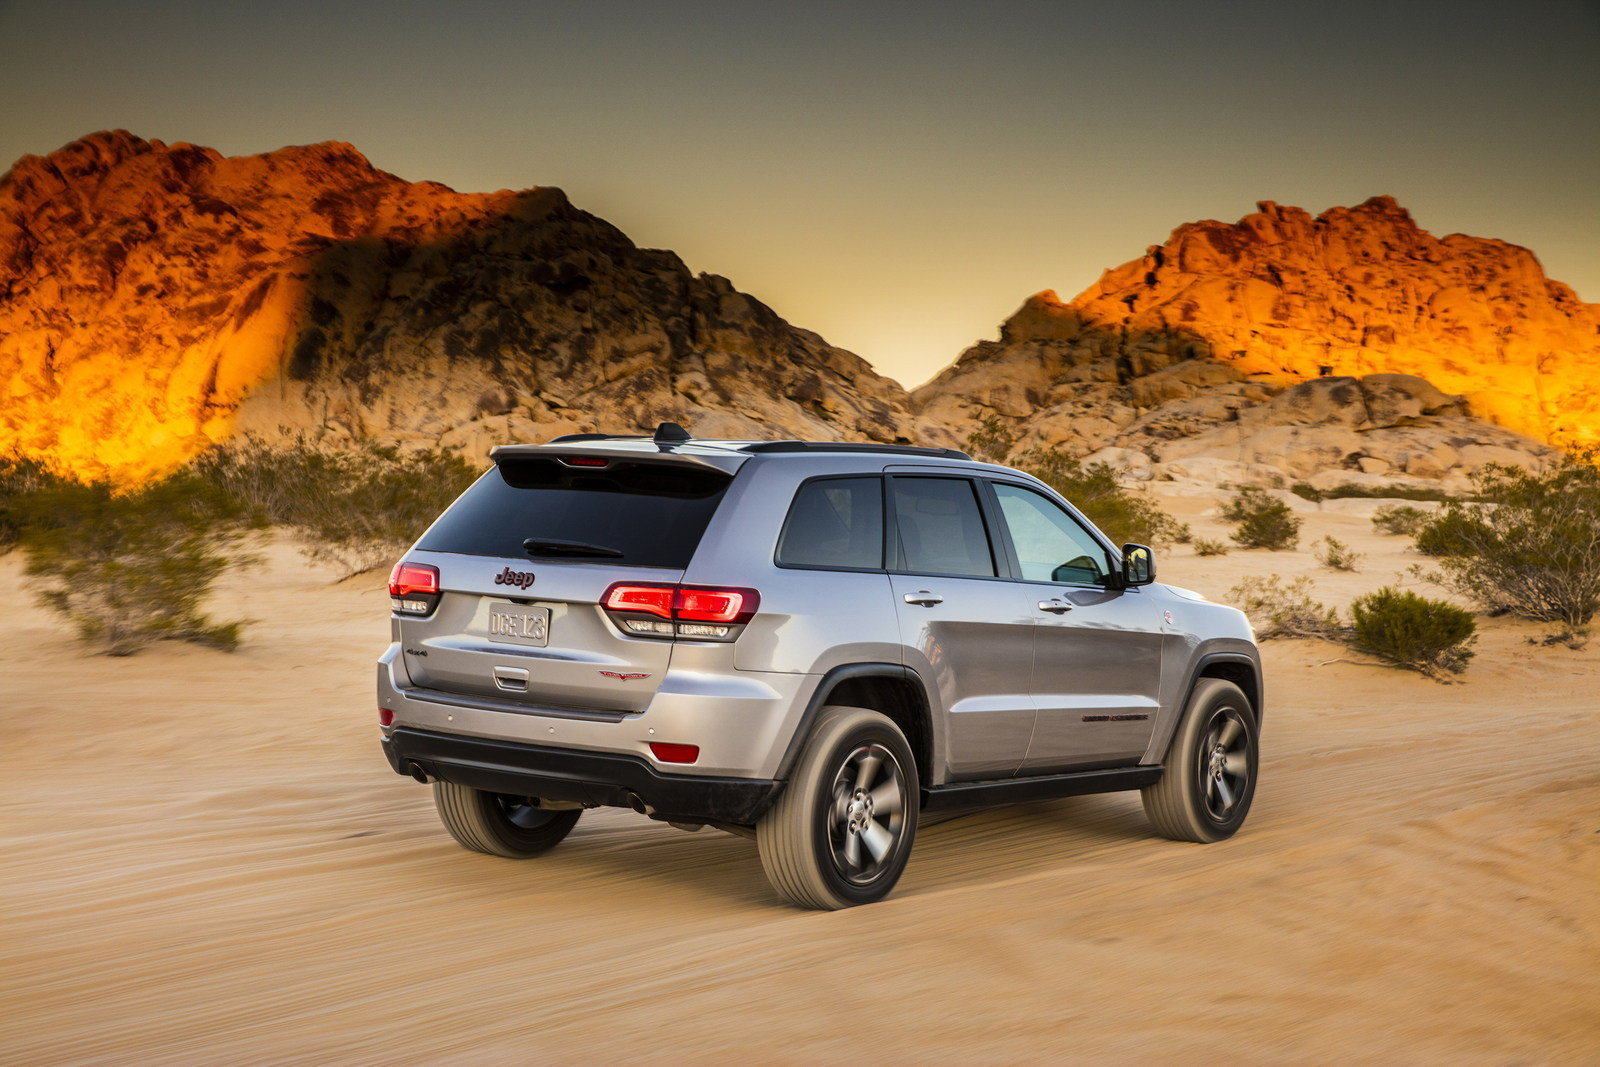 2017 jeep grand cherokee trailhawk picture 670617 car review top speed. Black Bedroom Furniture Sets. Home Design Ideas